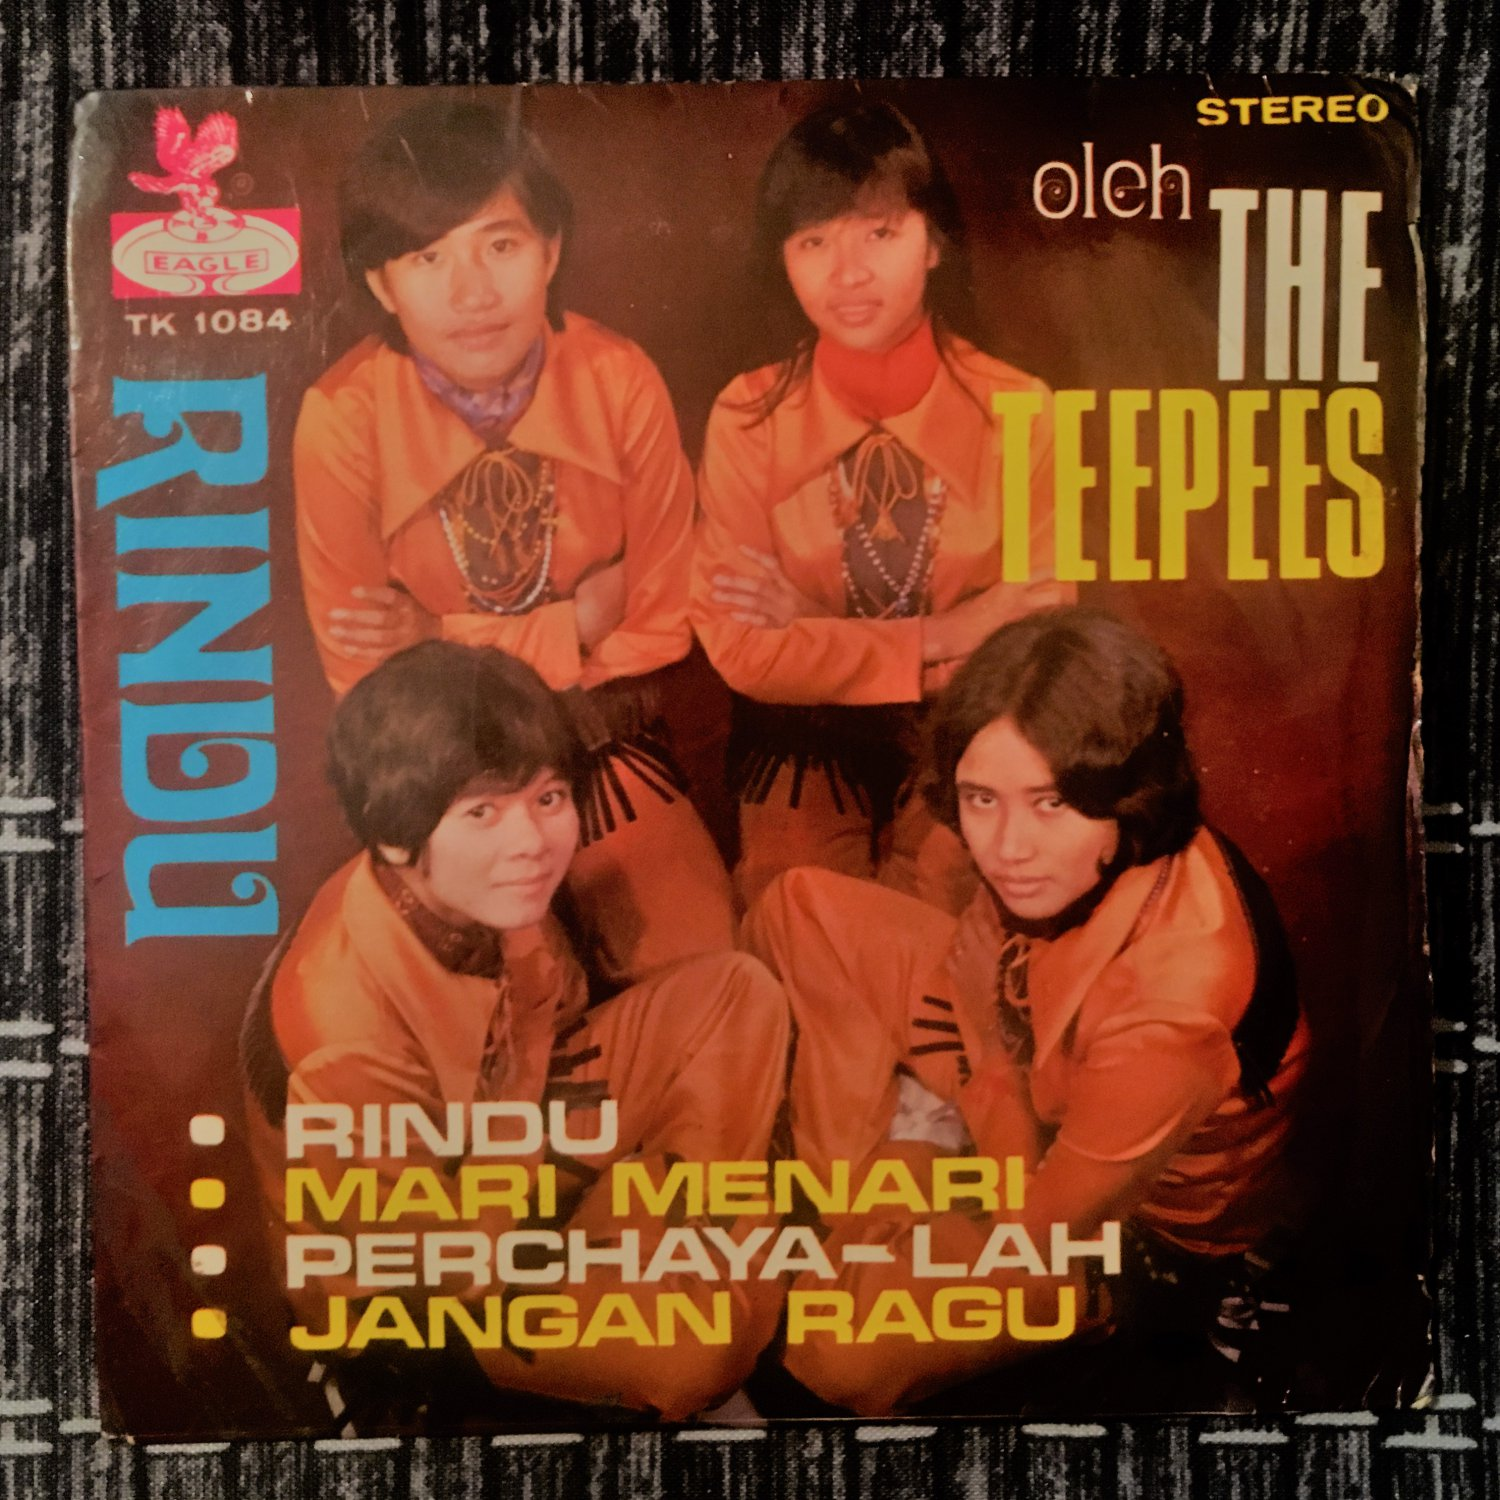 THE TEEPEES 45 EP rindu SINGAPORE MALAYSIA GARAGE 60s BEAT BREAKS mp3 LISTEN